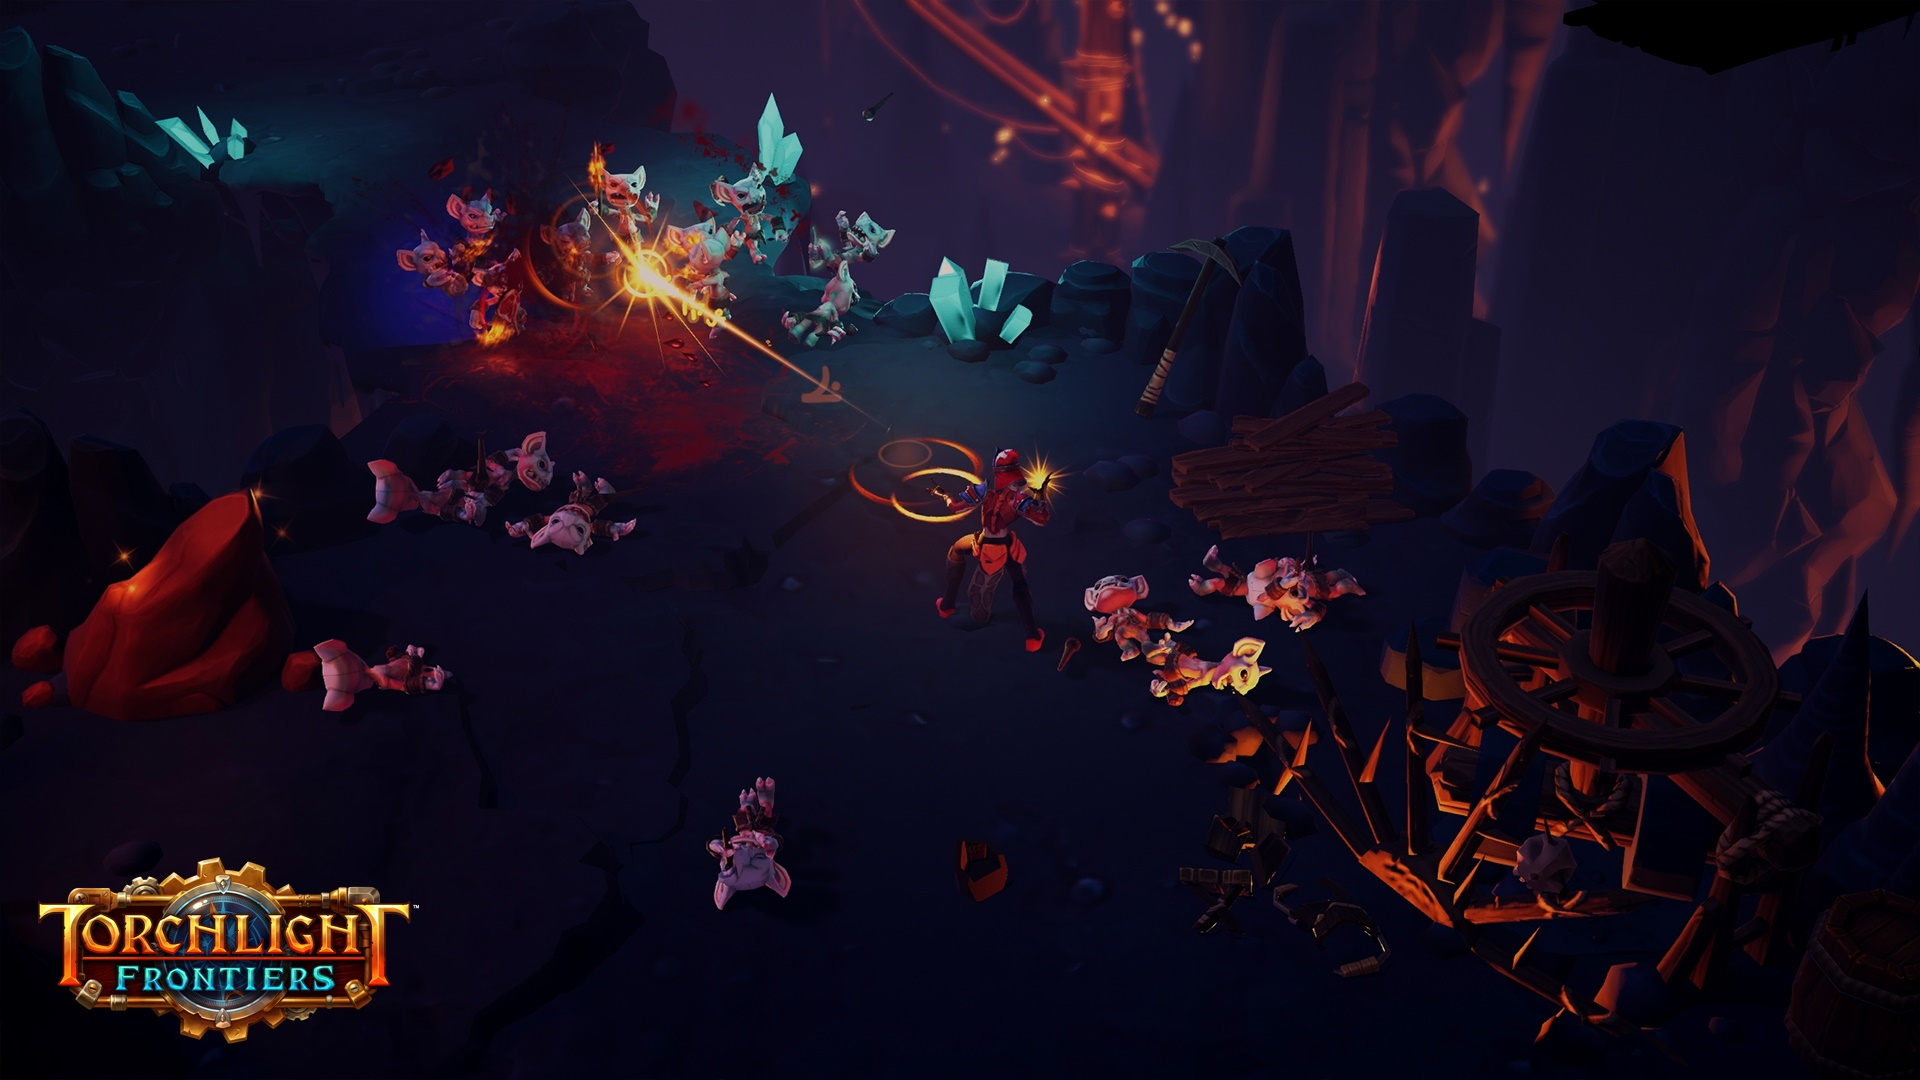 Torchlight Frontiers Dungeon Gameplay Screenshot